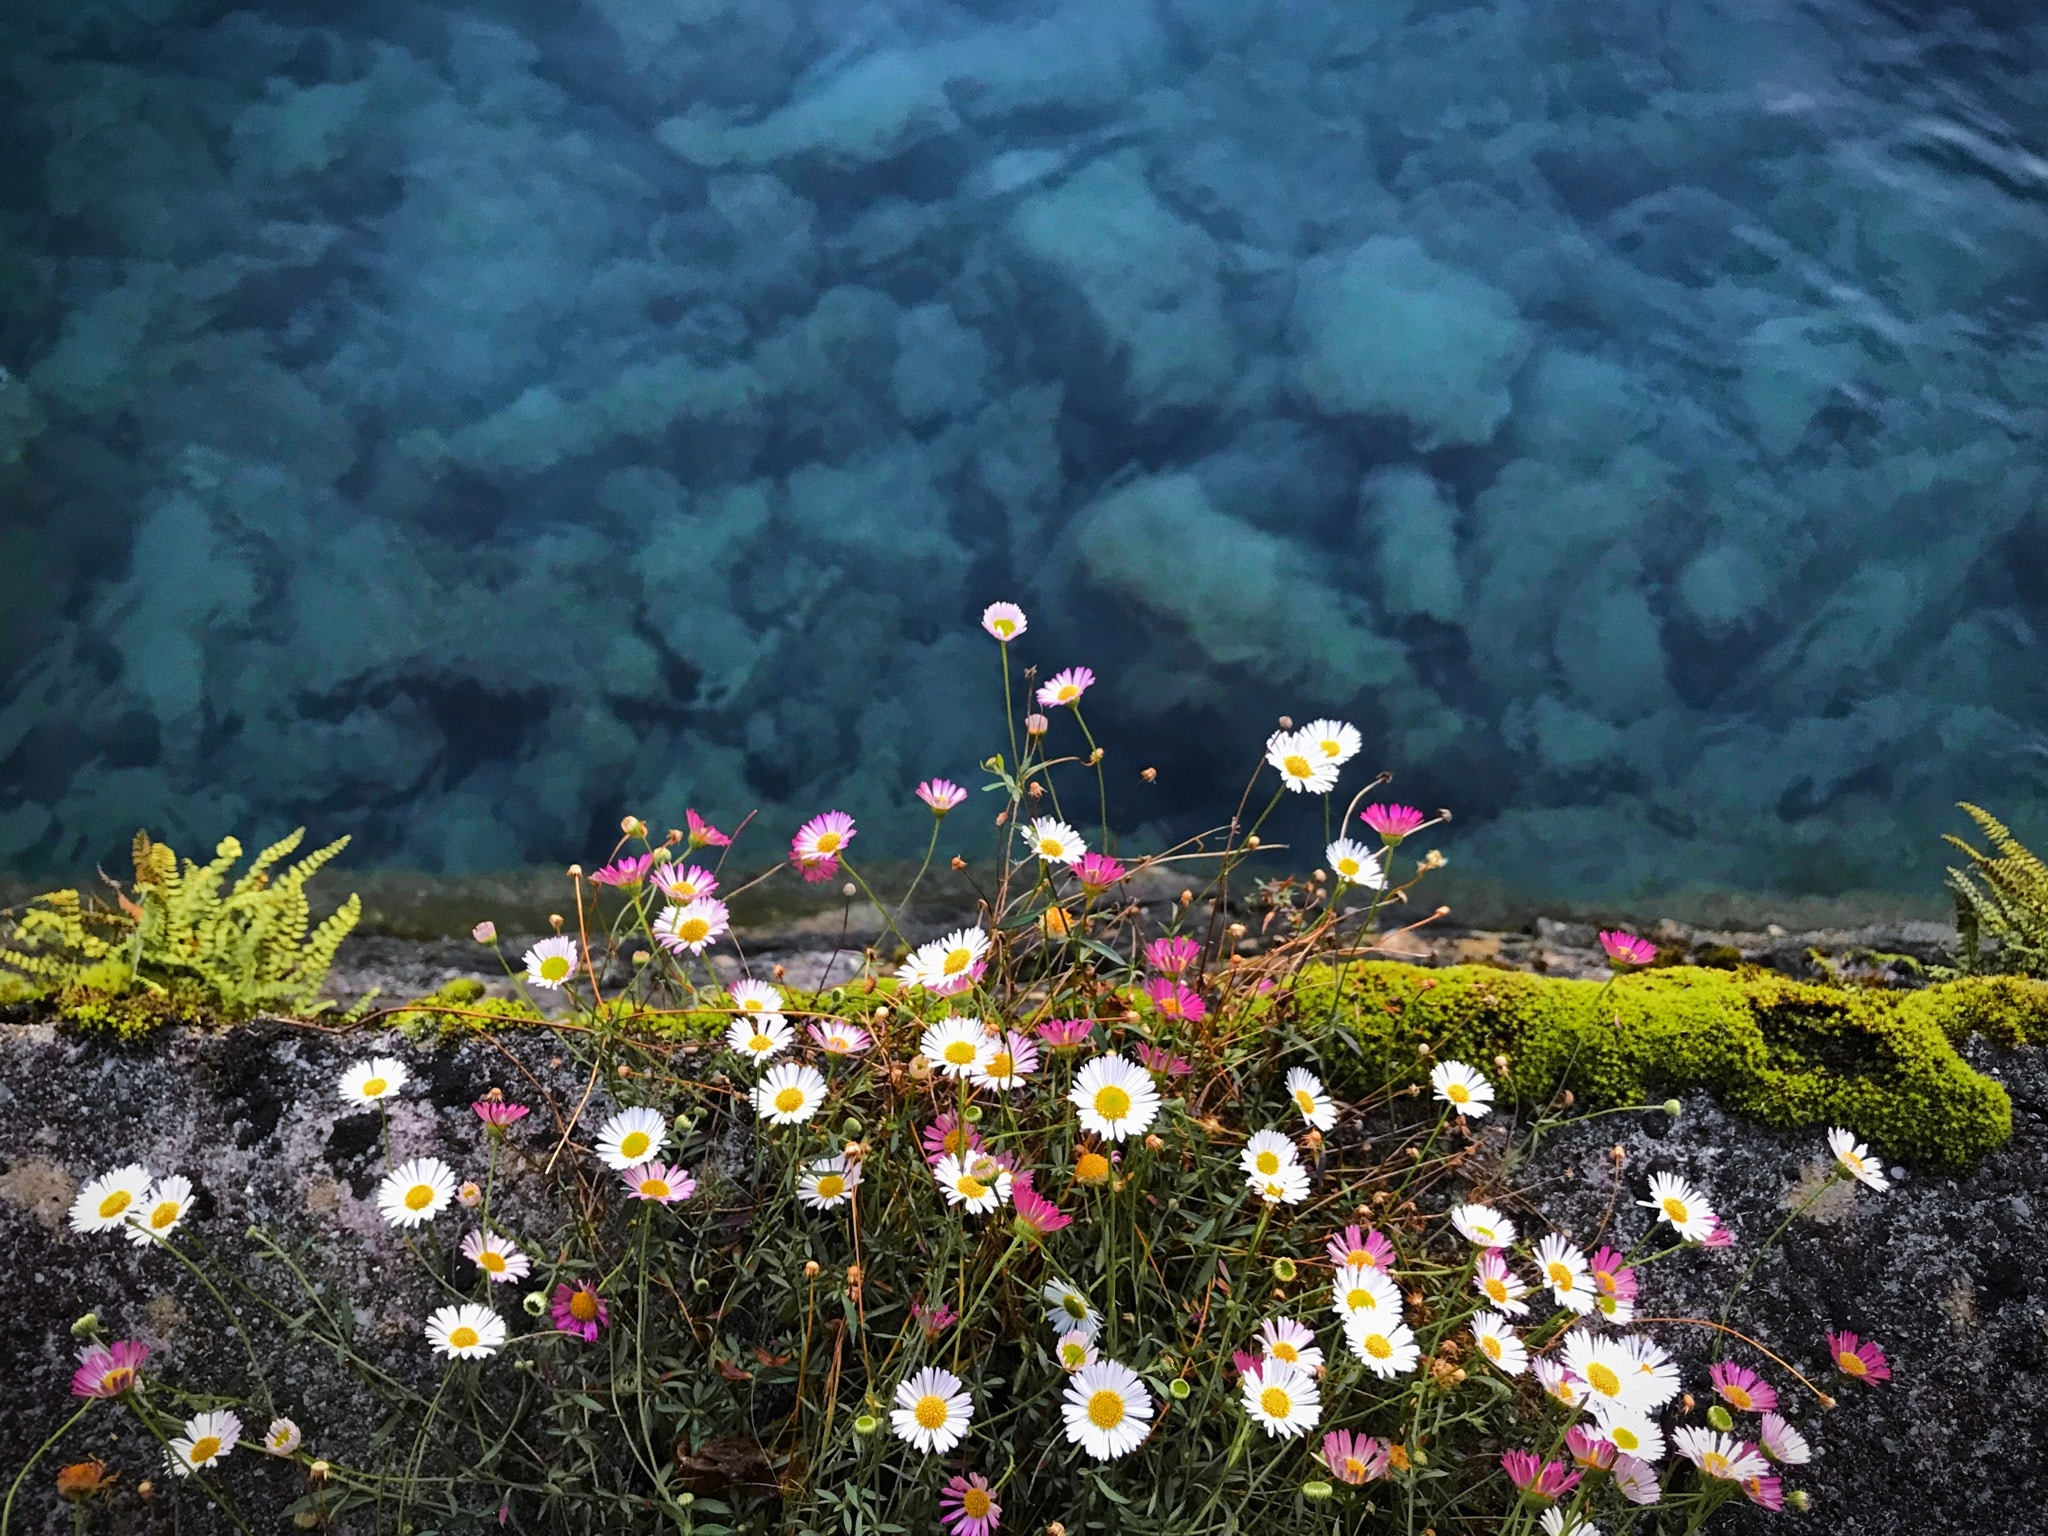 Flowers growing on a cliff face